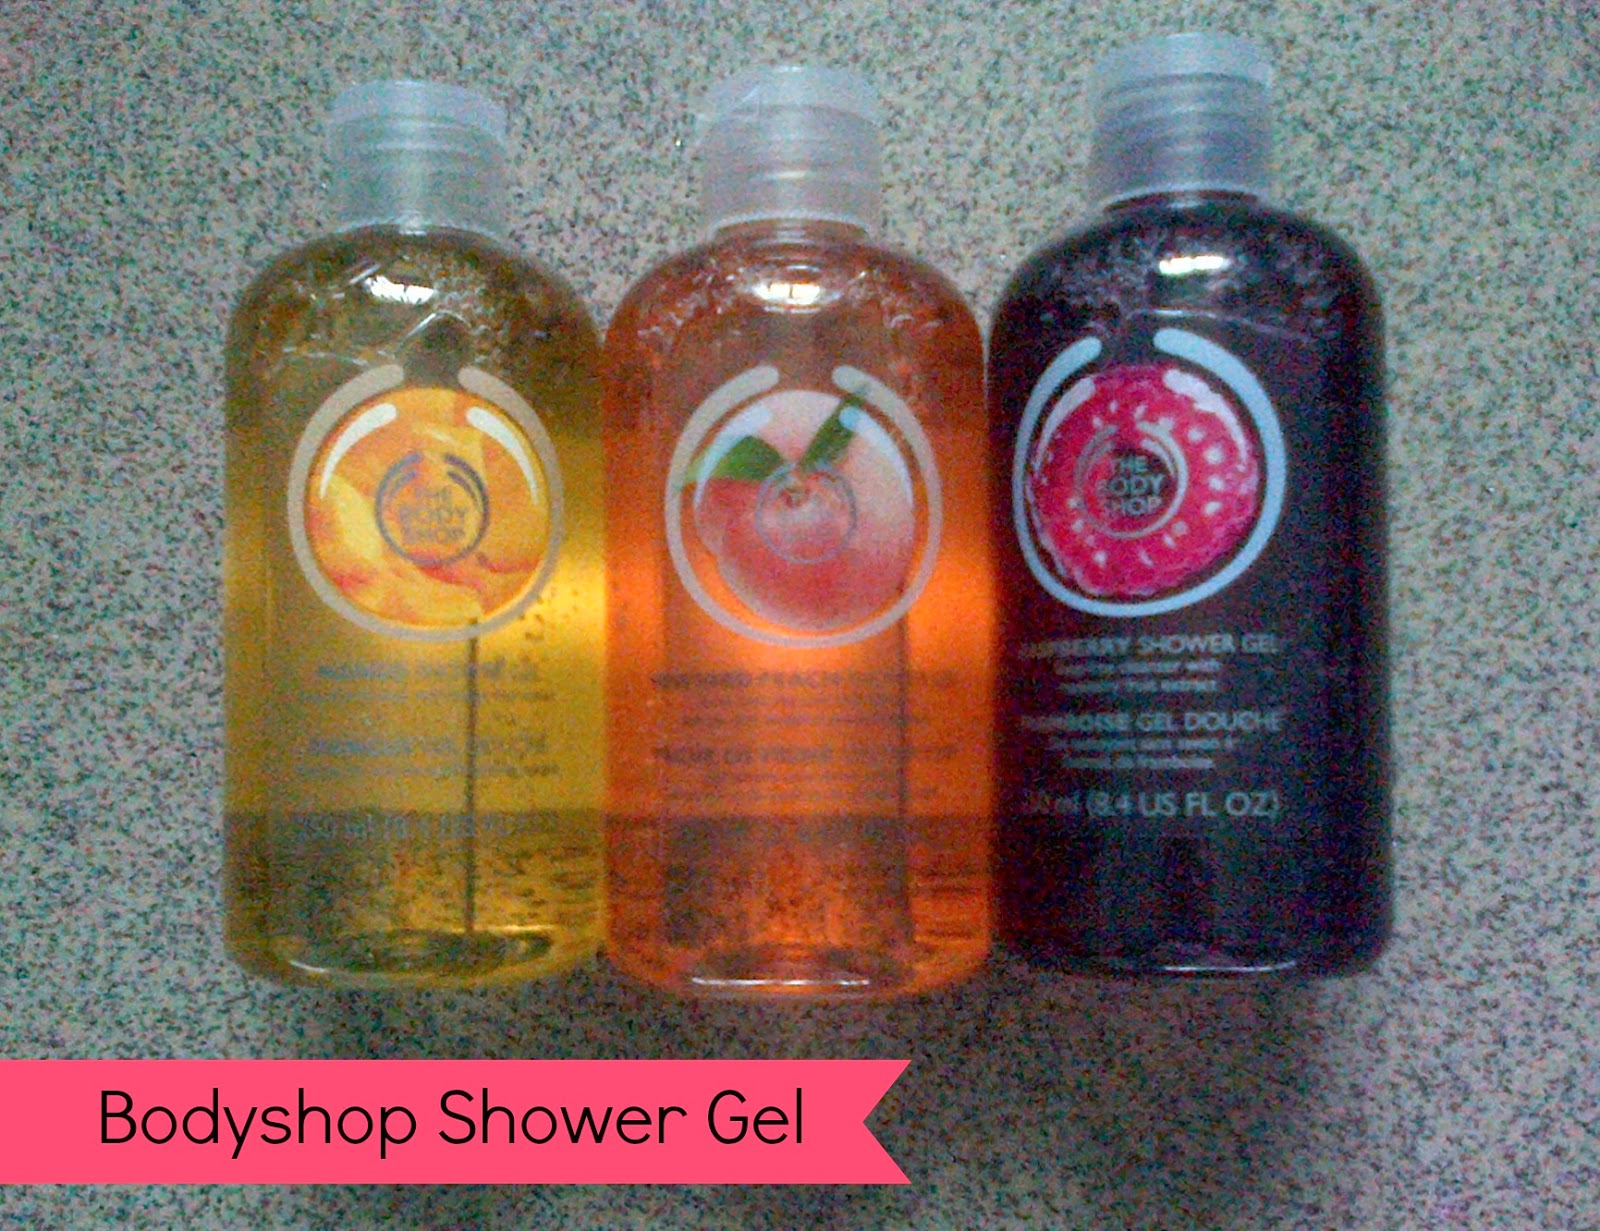 The Body Shop Shower Gels